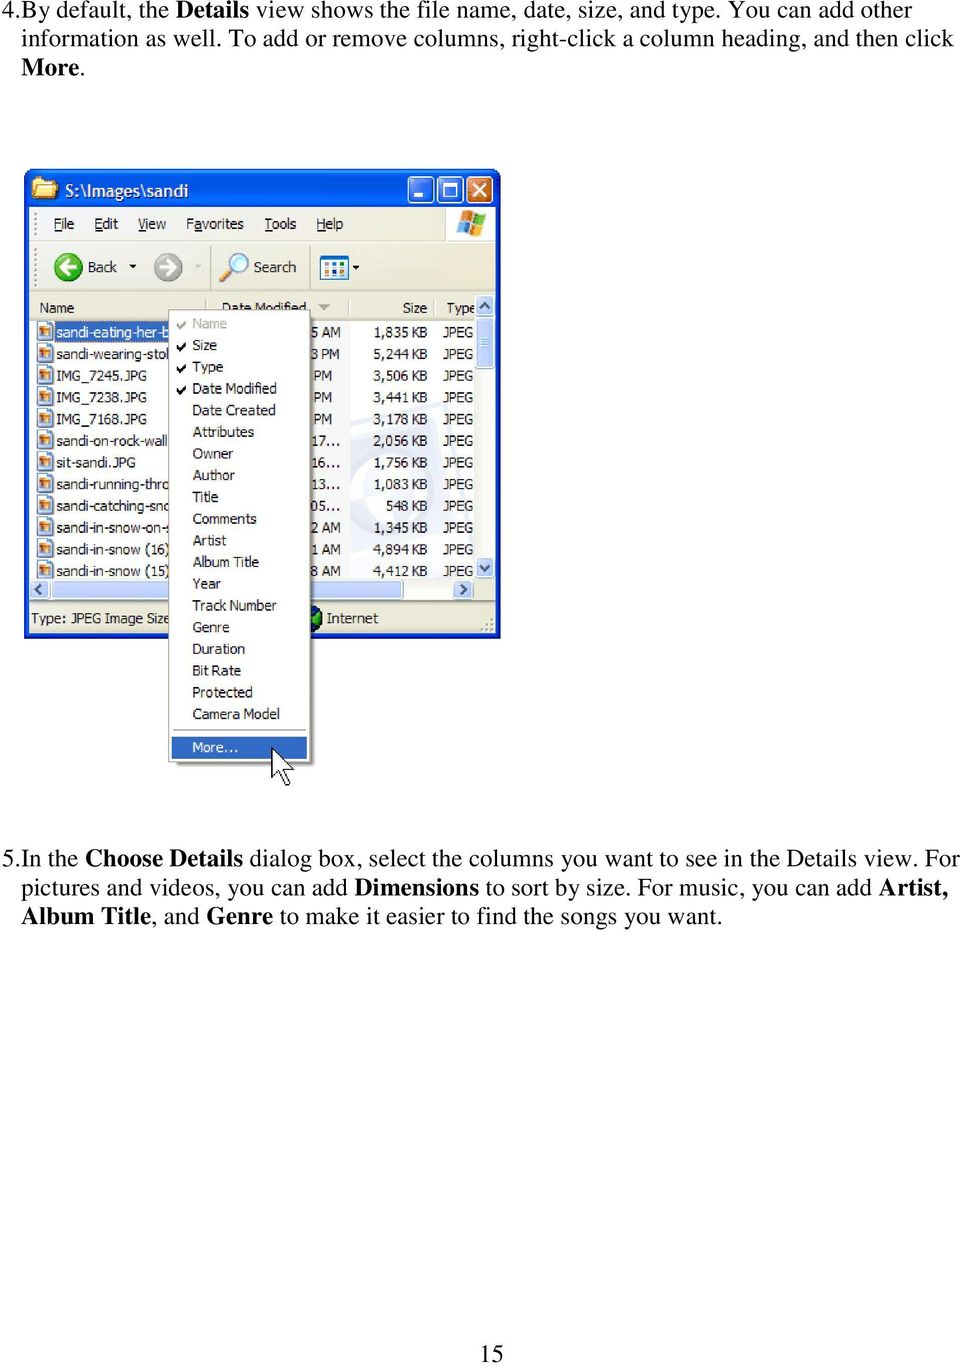 In the Choose Details dialog box, select the columns you want to see in the Details view.